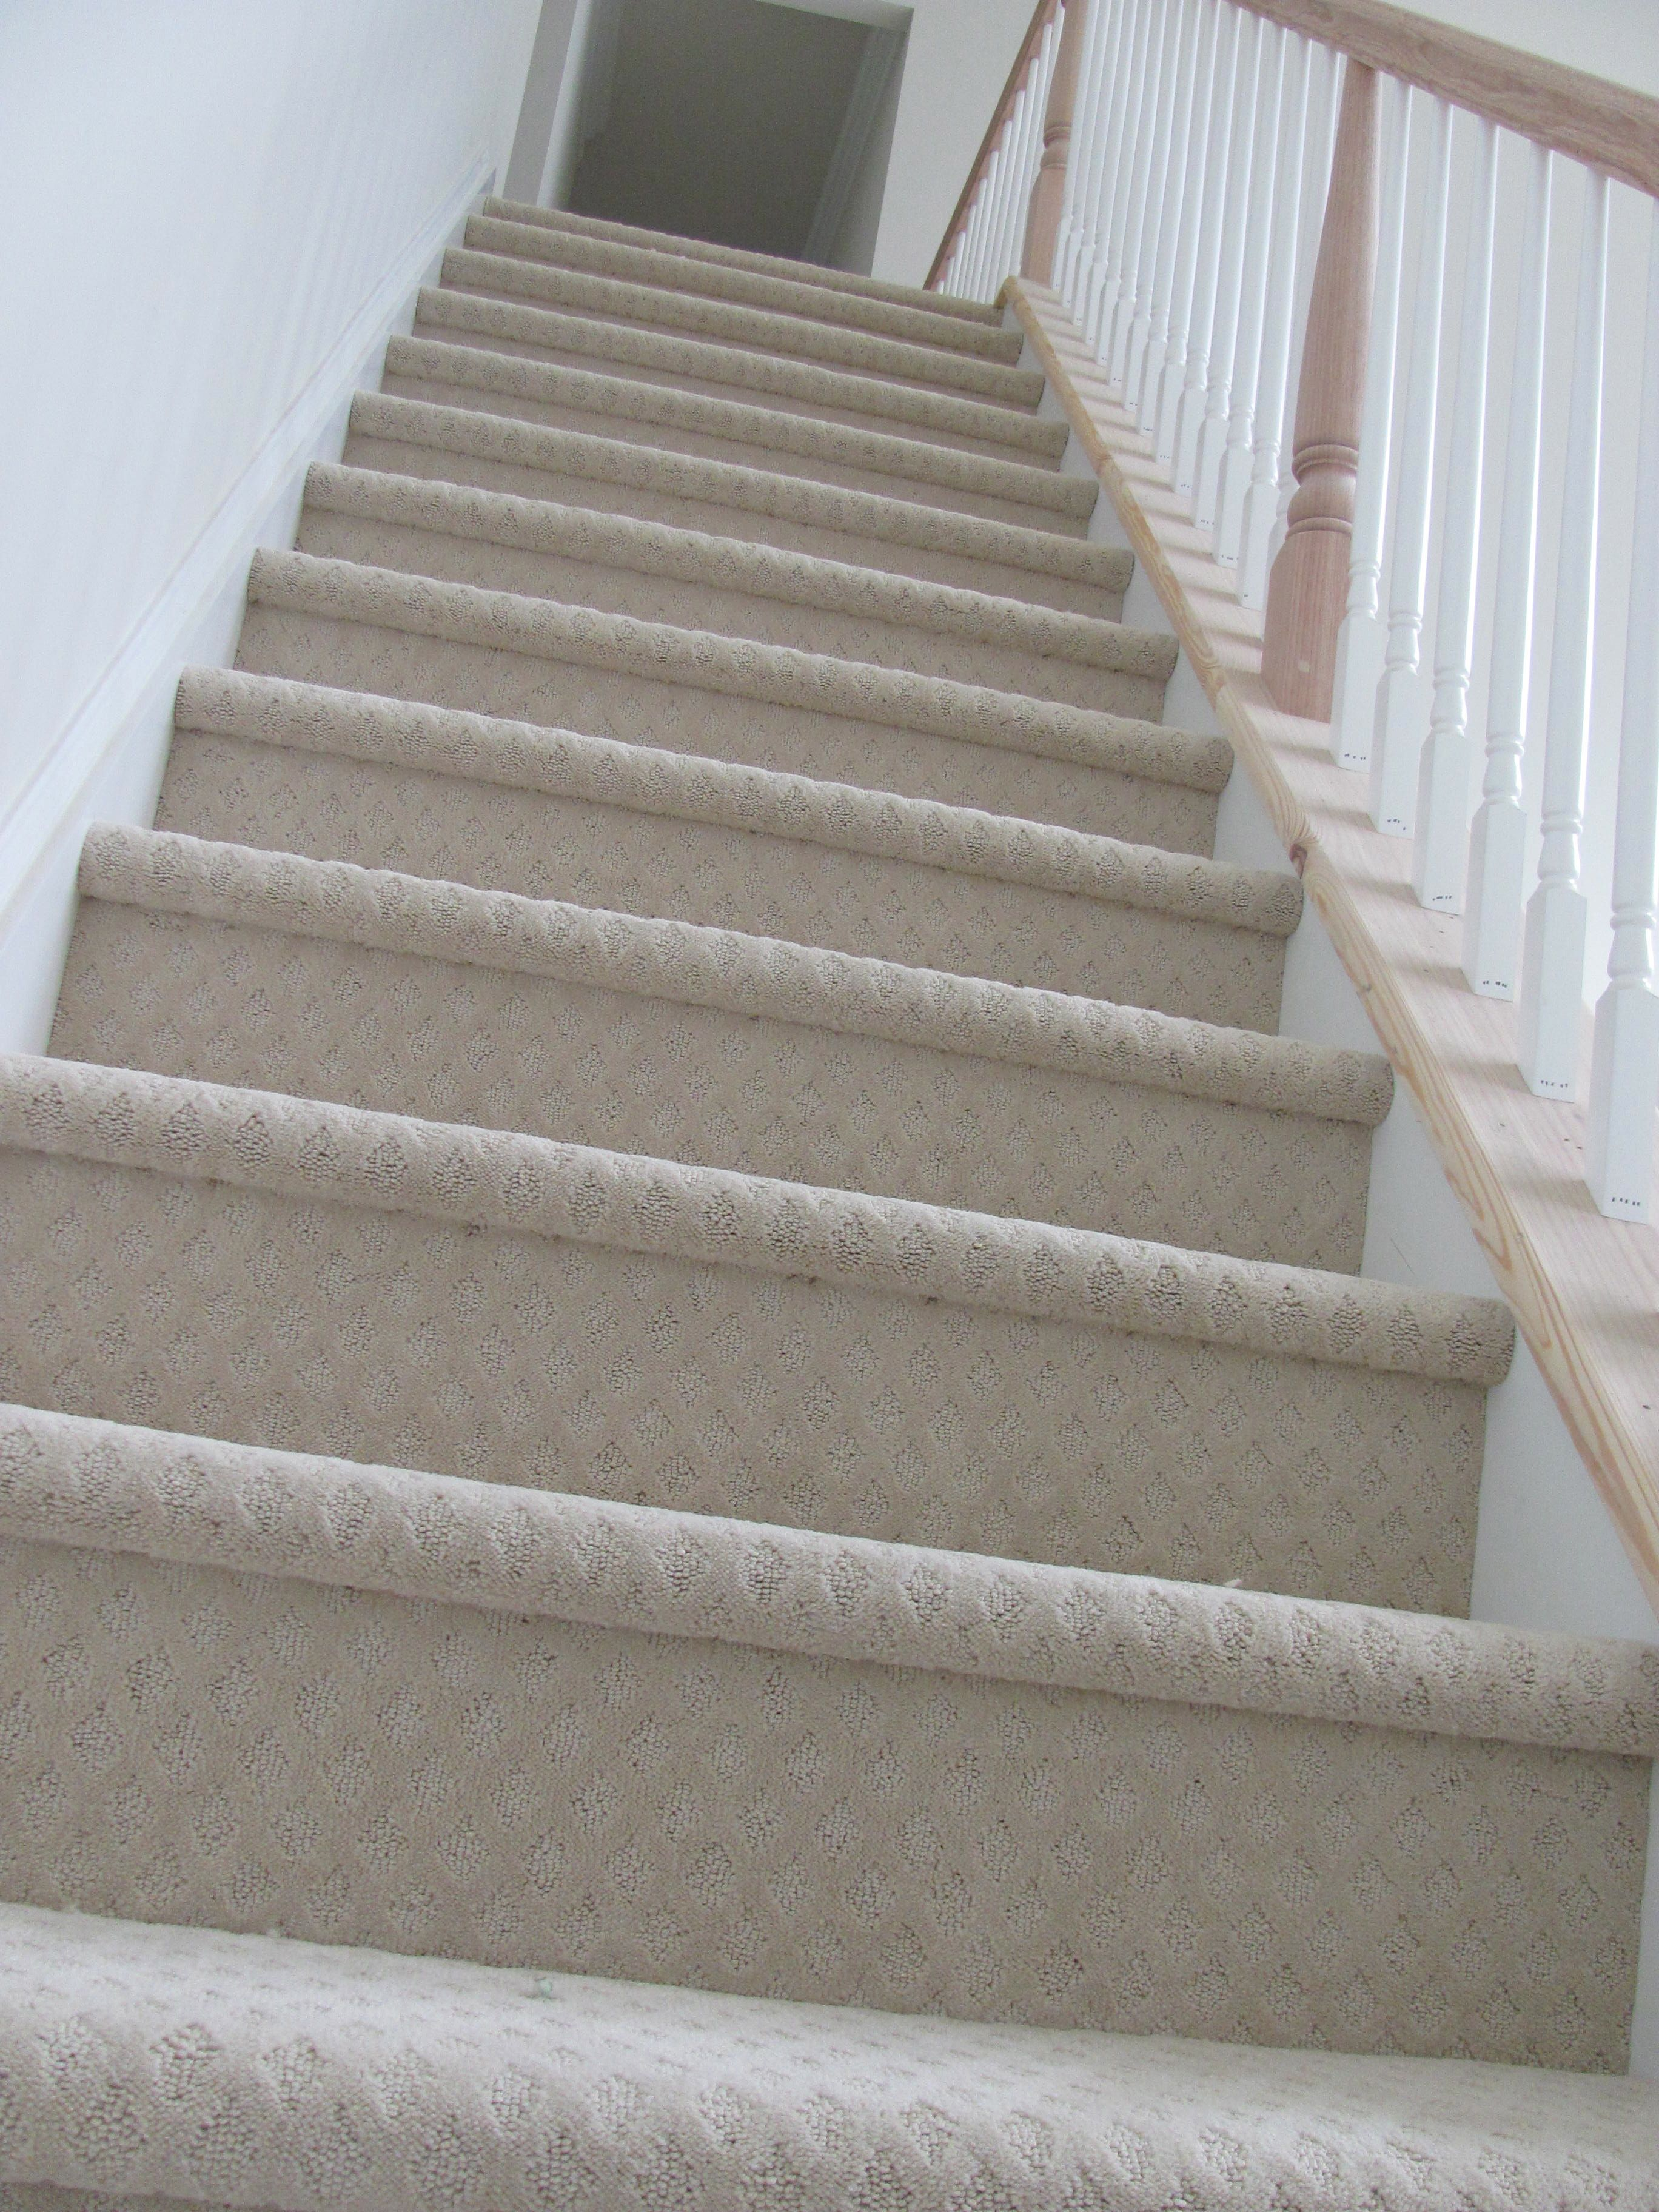 Best Back Stairs Carpeted Textured Carpet Carpet Stairs Stairs 640 x 480